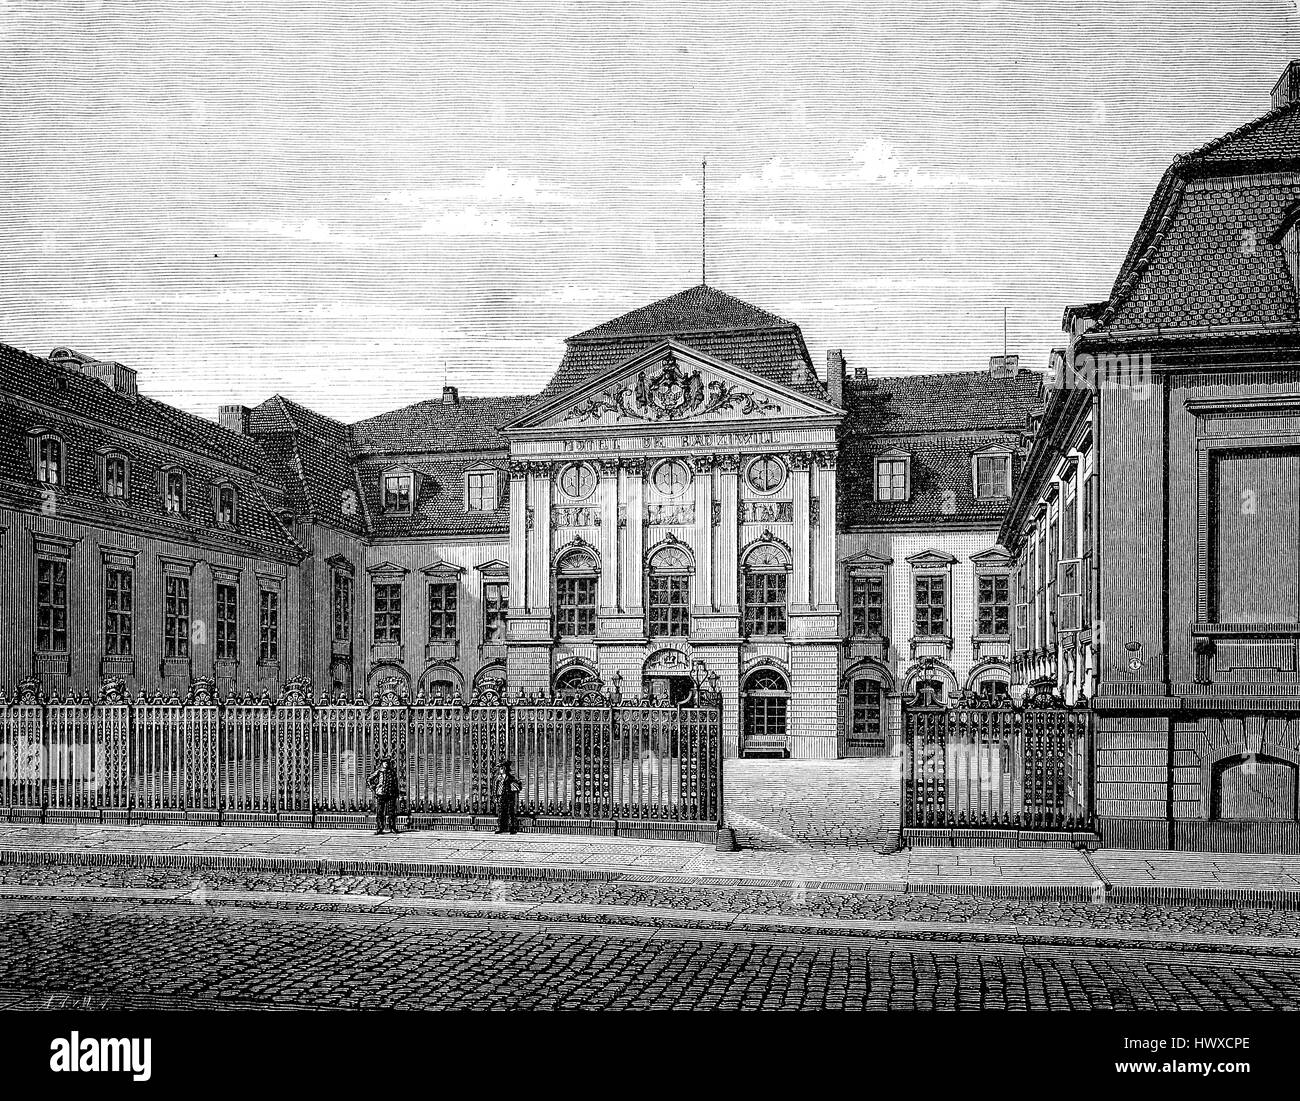 The Palais Radziwill, also called Palais Schulenburg or the Old Reich Stock  Photo - Alamy